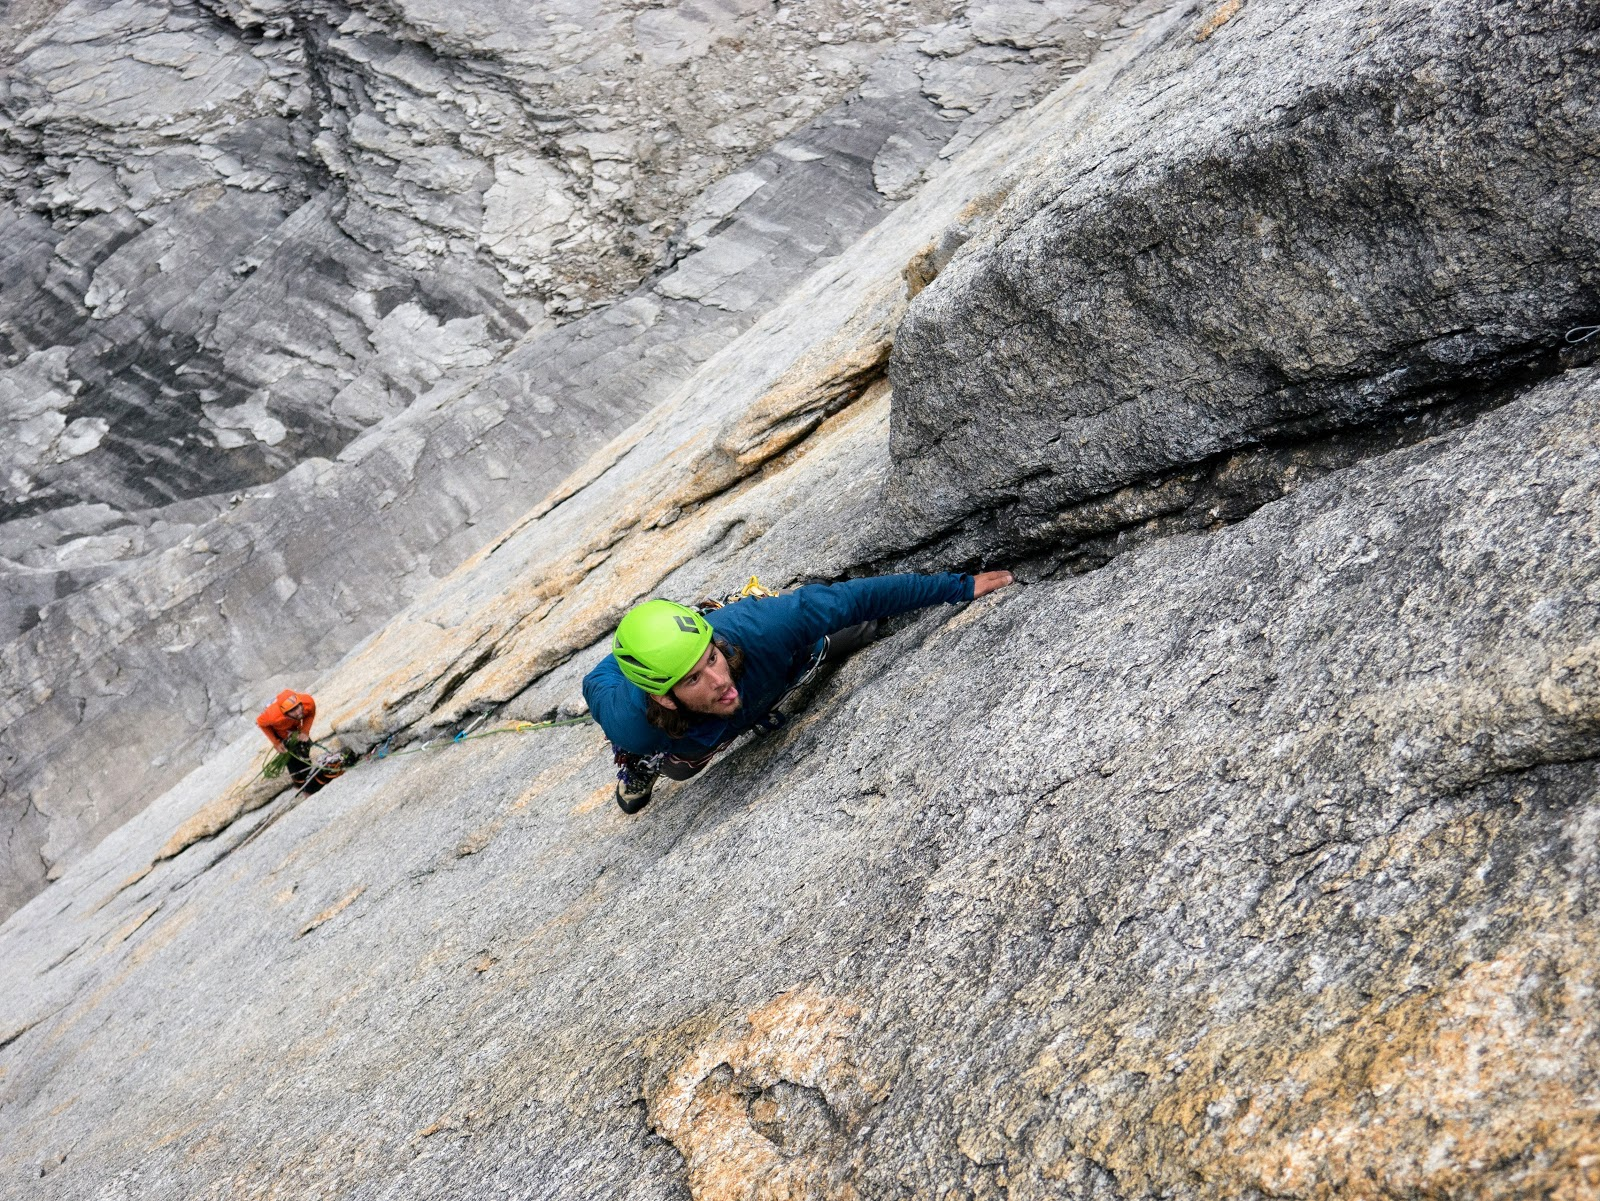 Gabe Boning contemplates the seeping Butt Crack pitch of Golden Petals (V 5.13+ or 5.12 A0, 14 pitches). [Photo] Engberg, Bain, Boning and Braasch collection